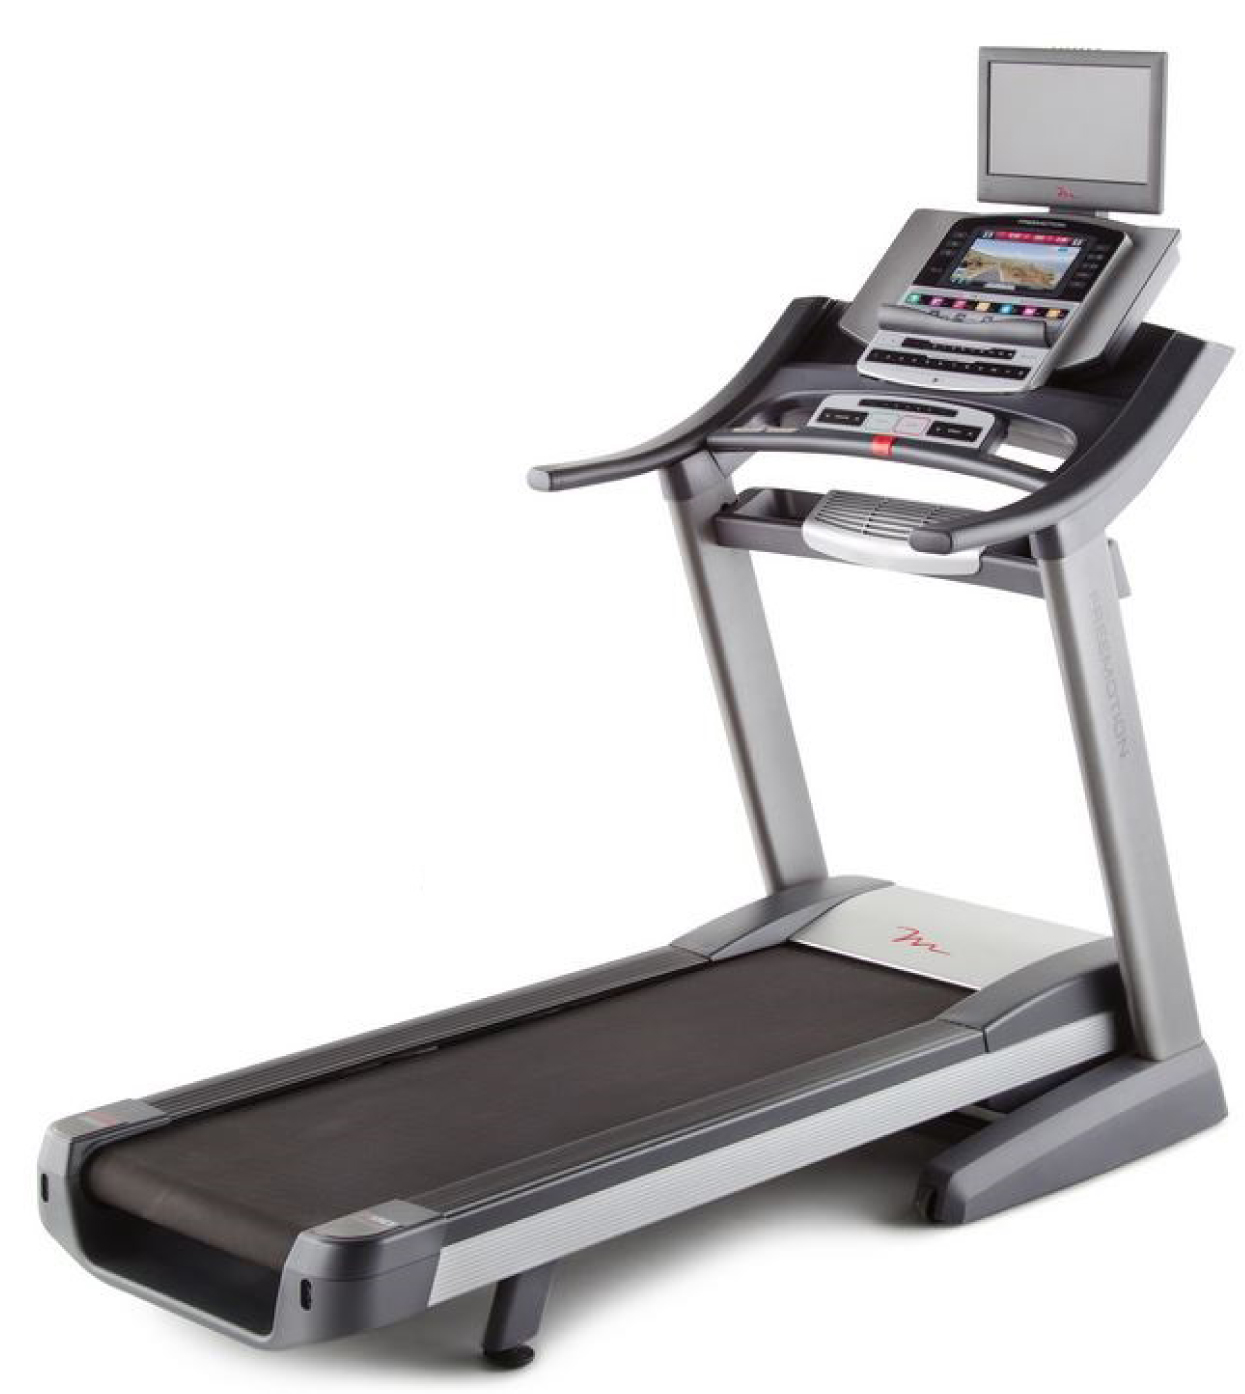 Freemotion 790 Interactive Treadmill Gym Pros